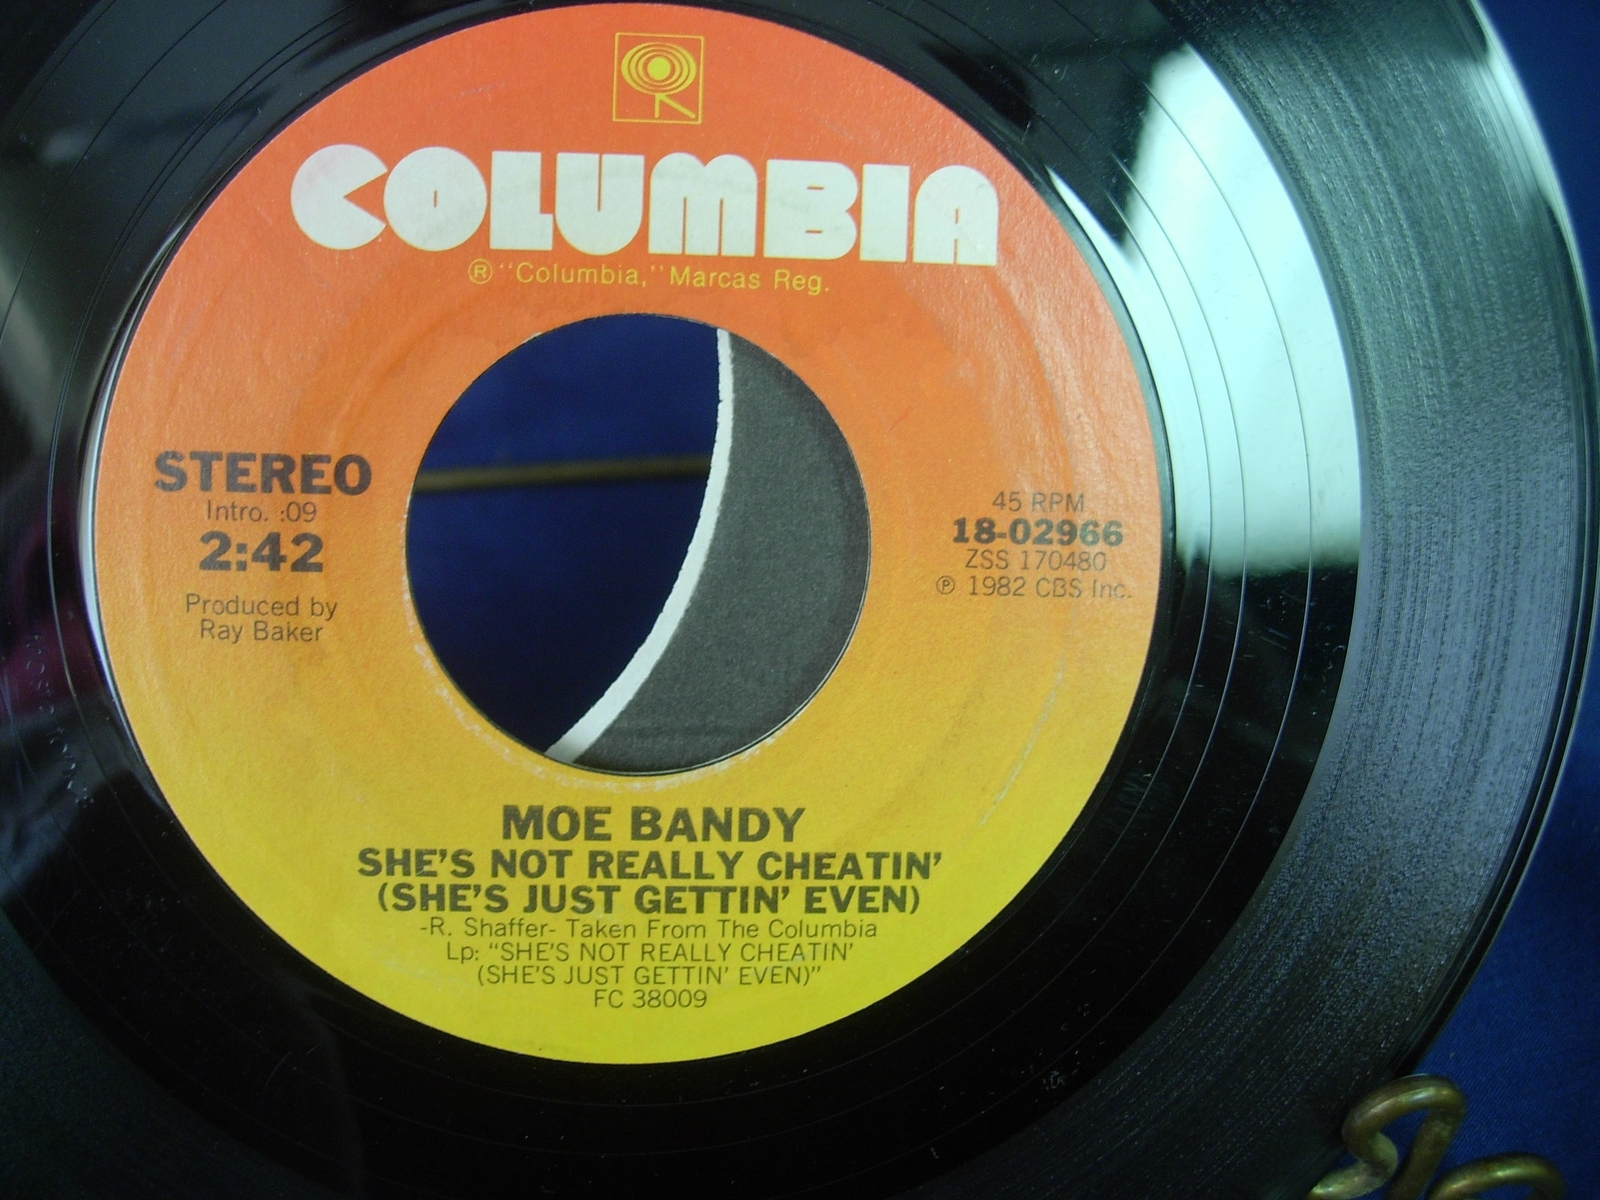 Moe Bandy - All American Dream / She's Not Really Cheating - Columbia 18-02966